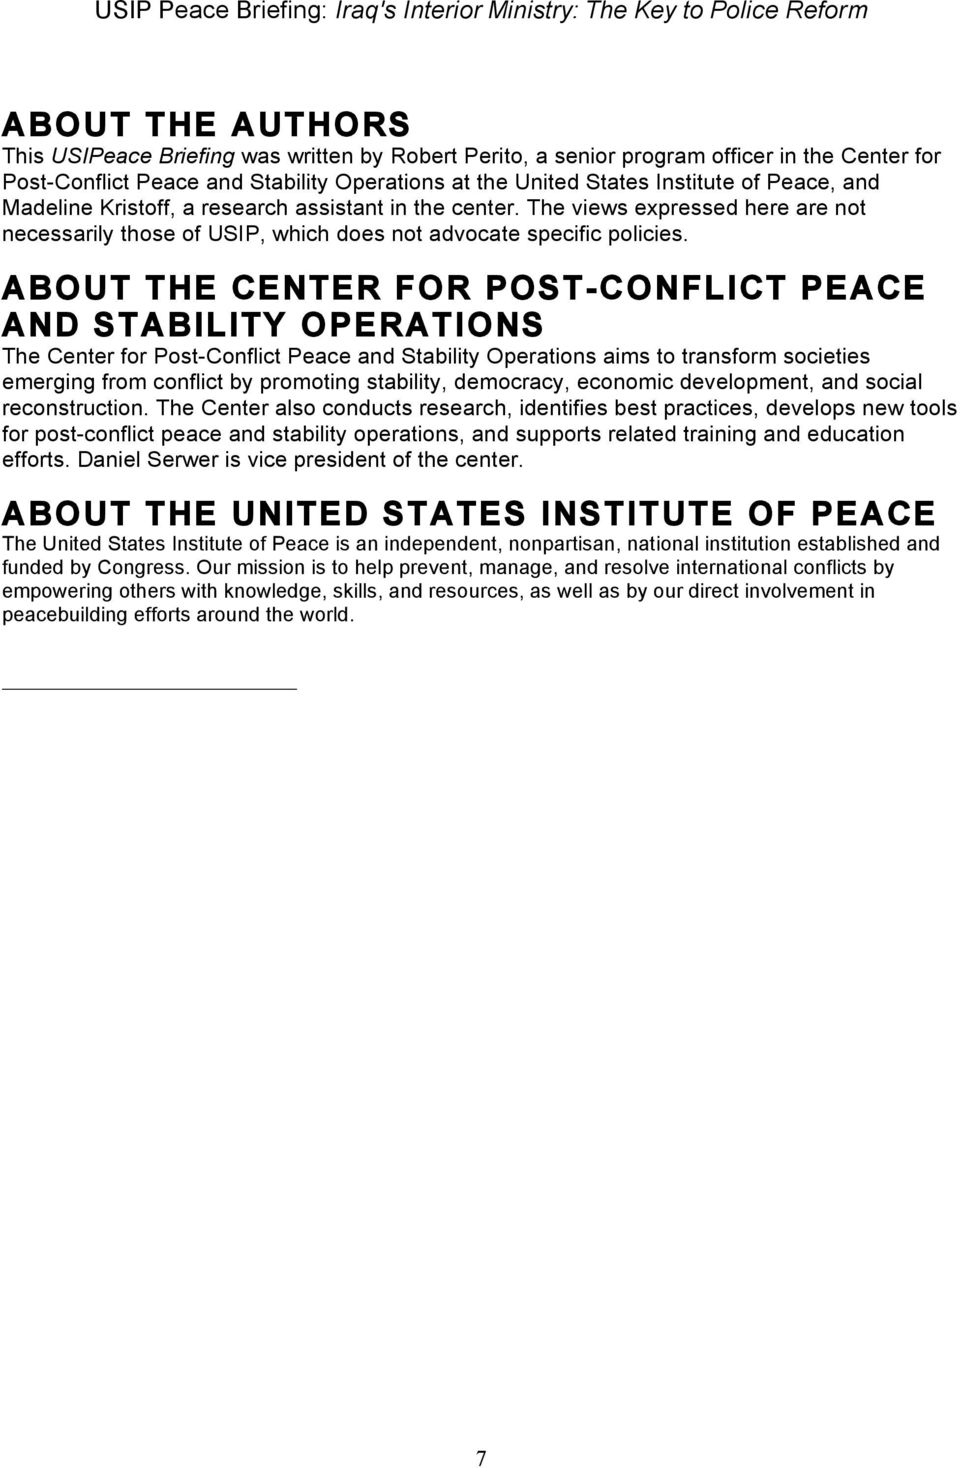 ABOUT THE CENTER FOR POST-CONFLICT PEACE AND STABILITY OPERATIONS The Center for Post-Conflict Peace and Stability Operations aims to transform societies emerging from conflict by promoting